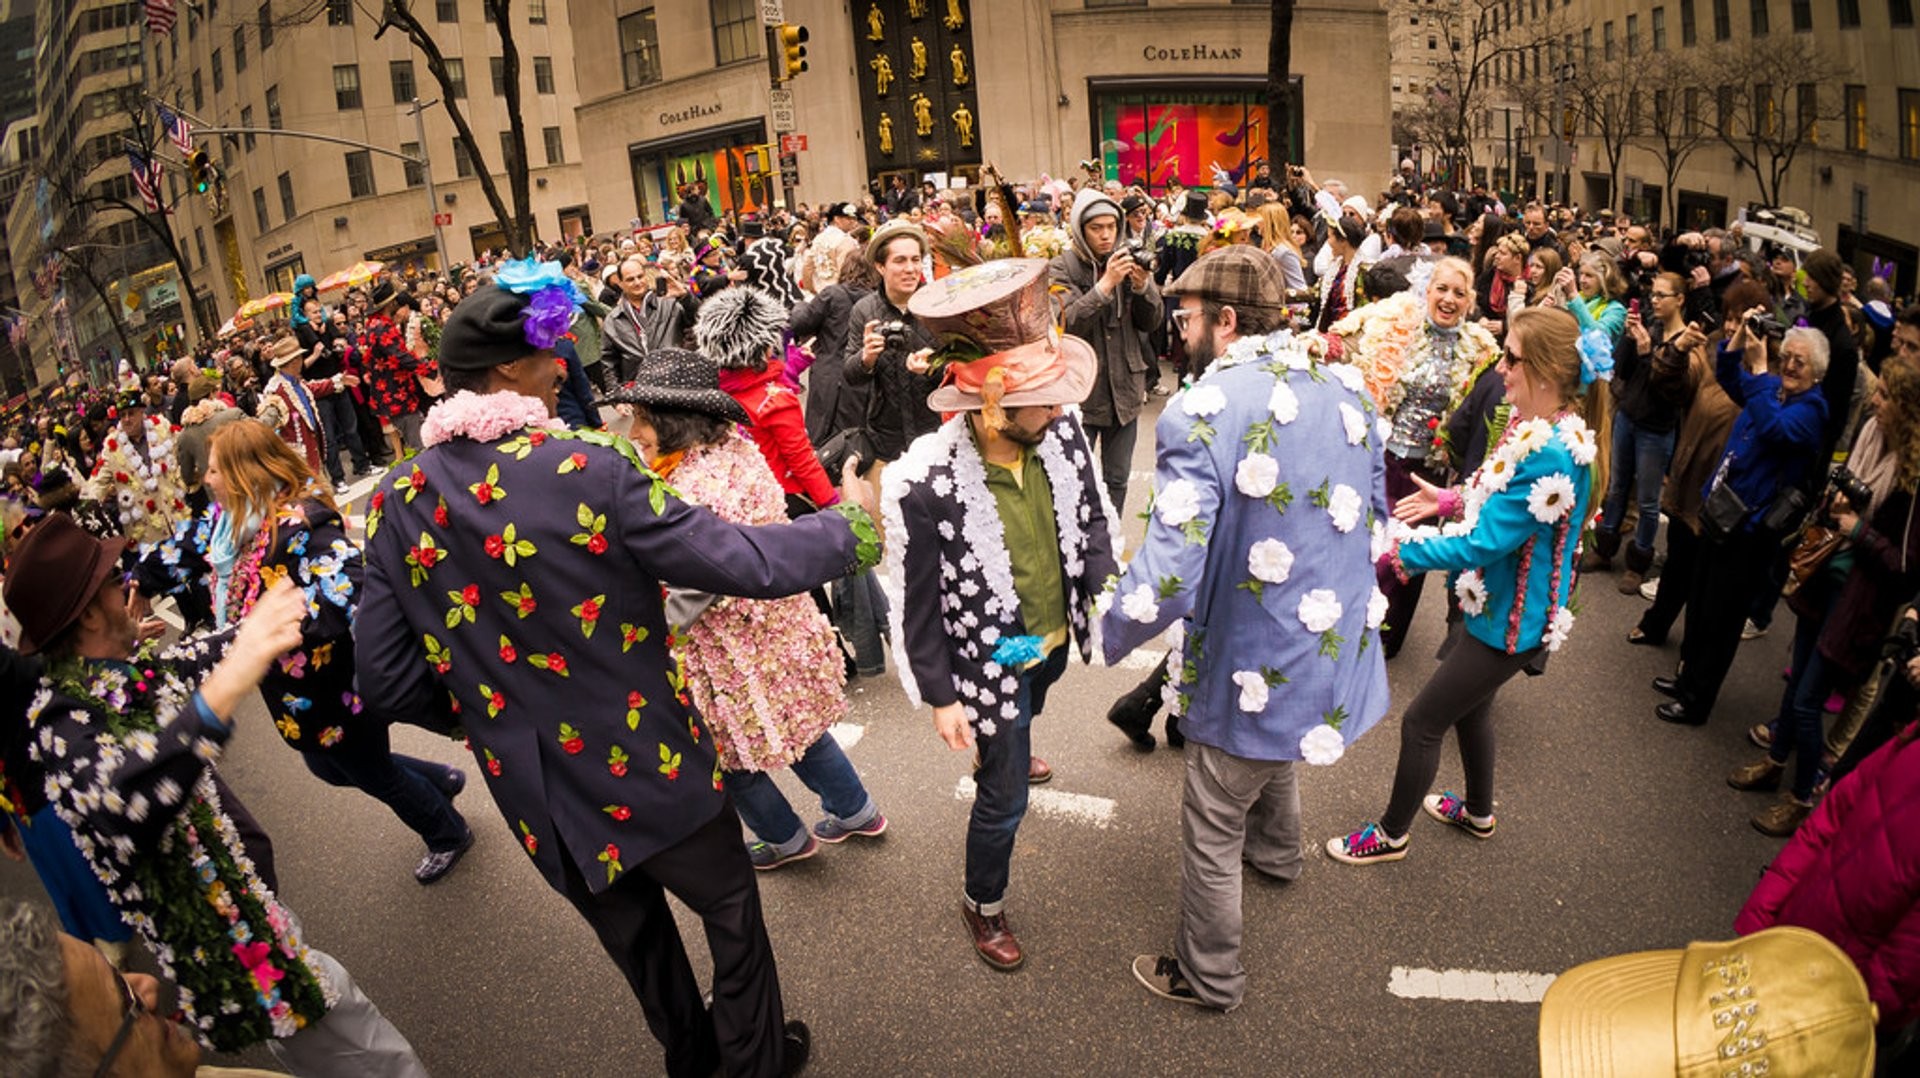 Easter Parade and Easter Bonnet Festival in New York 2019 - Best Time